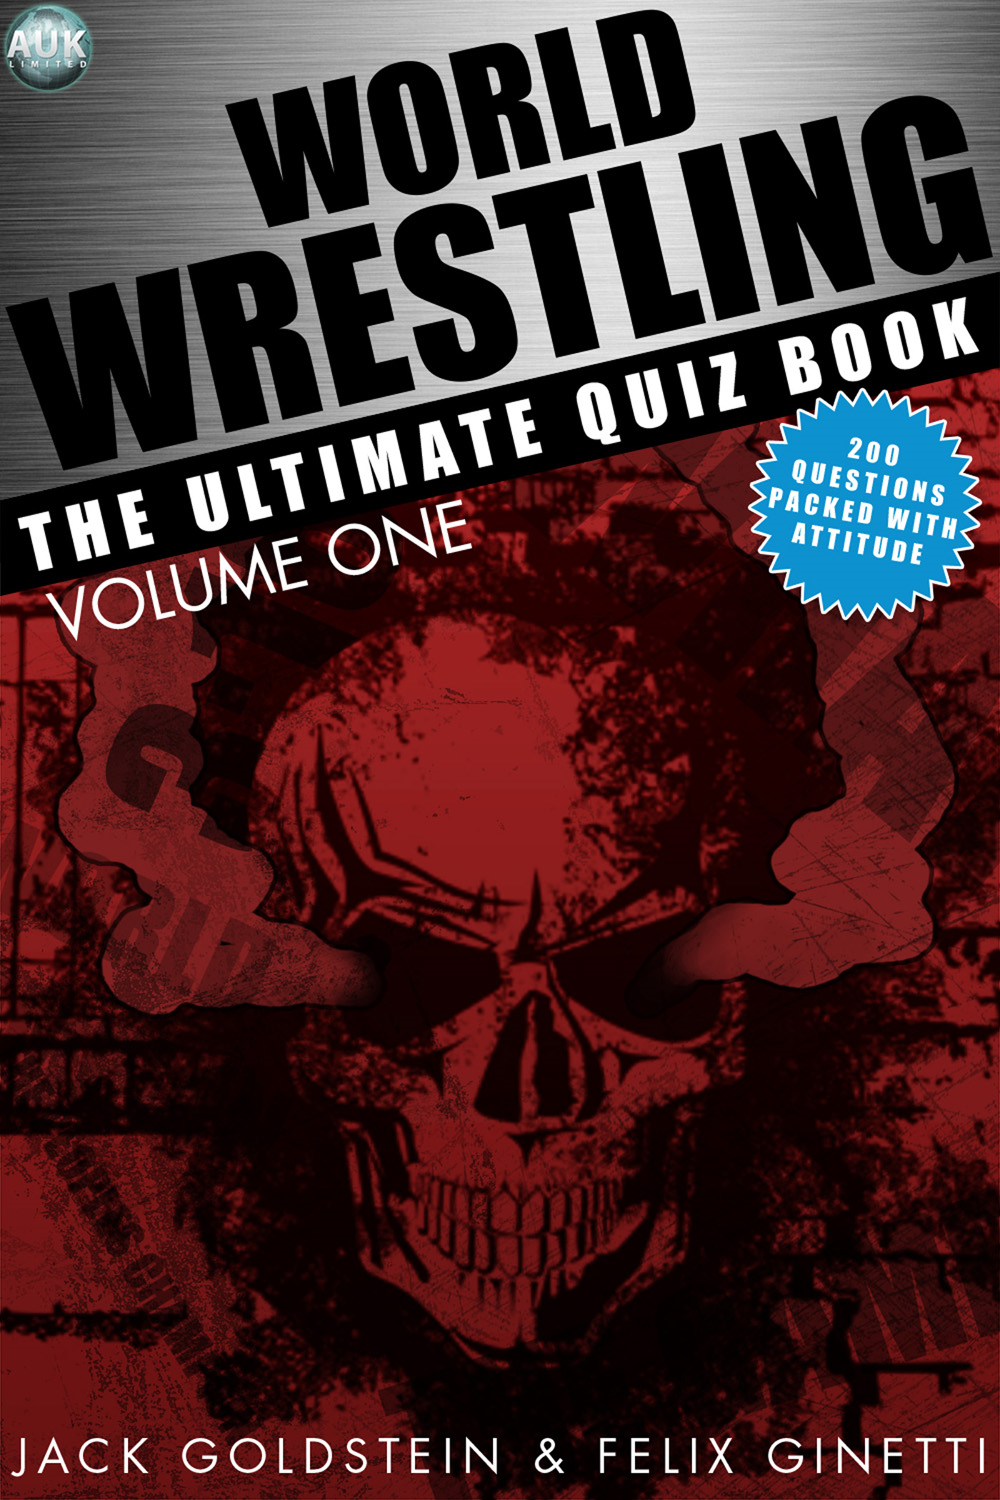 World Wrestling: The Ultimate Quiz Book - Volume 1